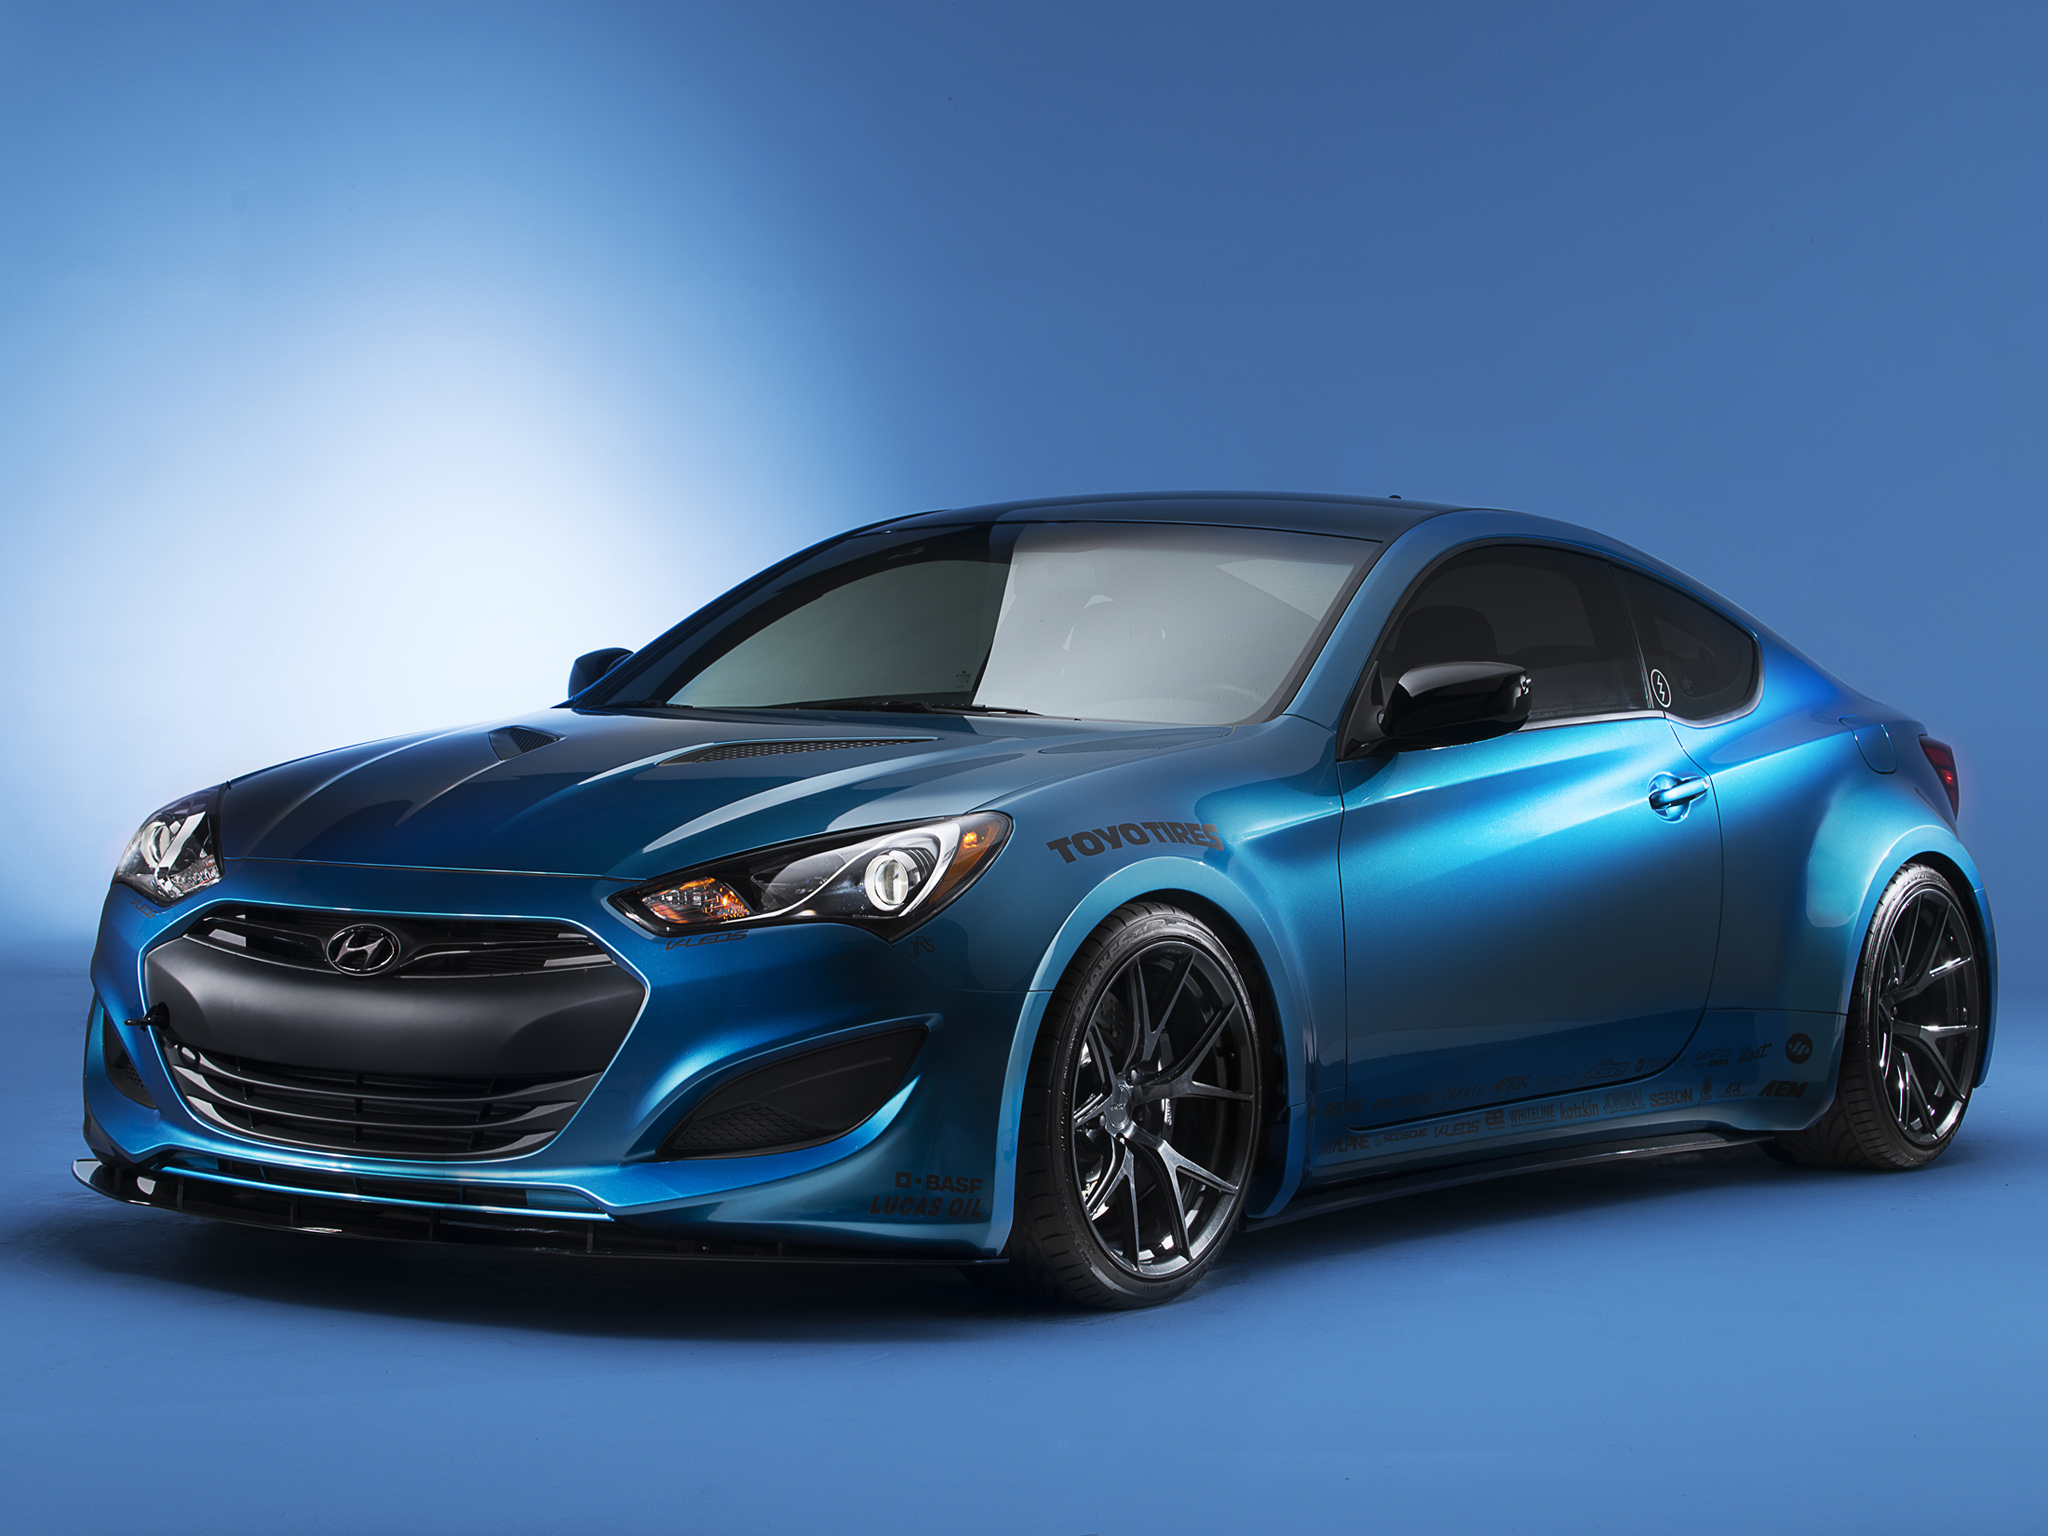 2013 hyundai genesis coupe jp edition tuning g wallpaper. Black Bedroom Furniture Sets. Home Design Ideas